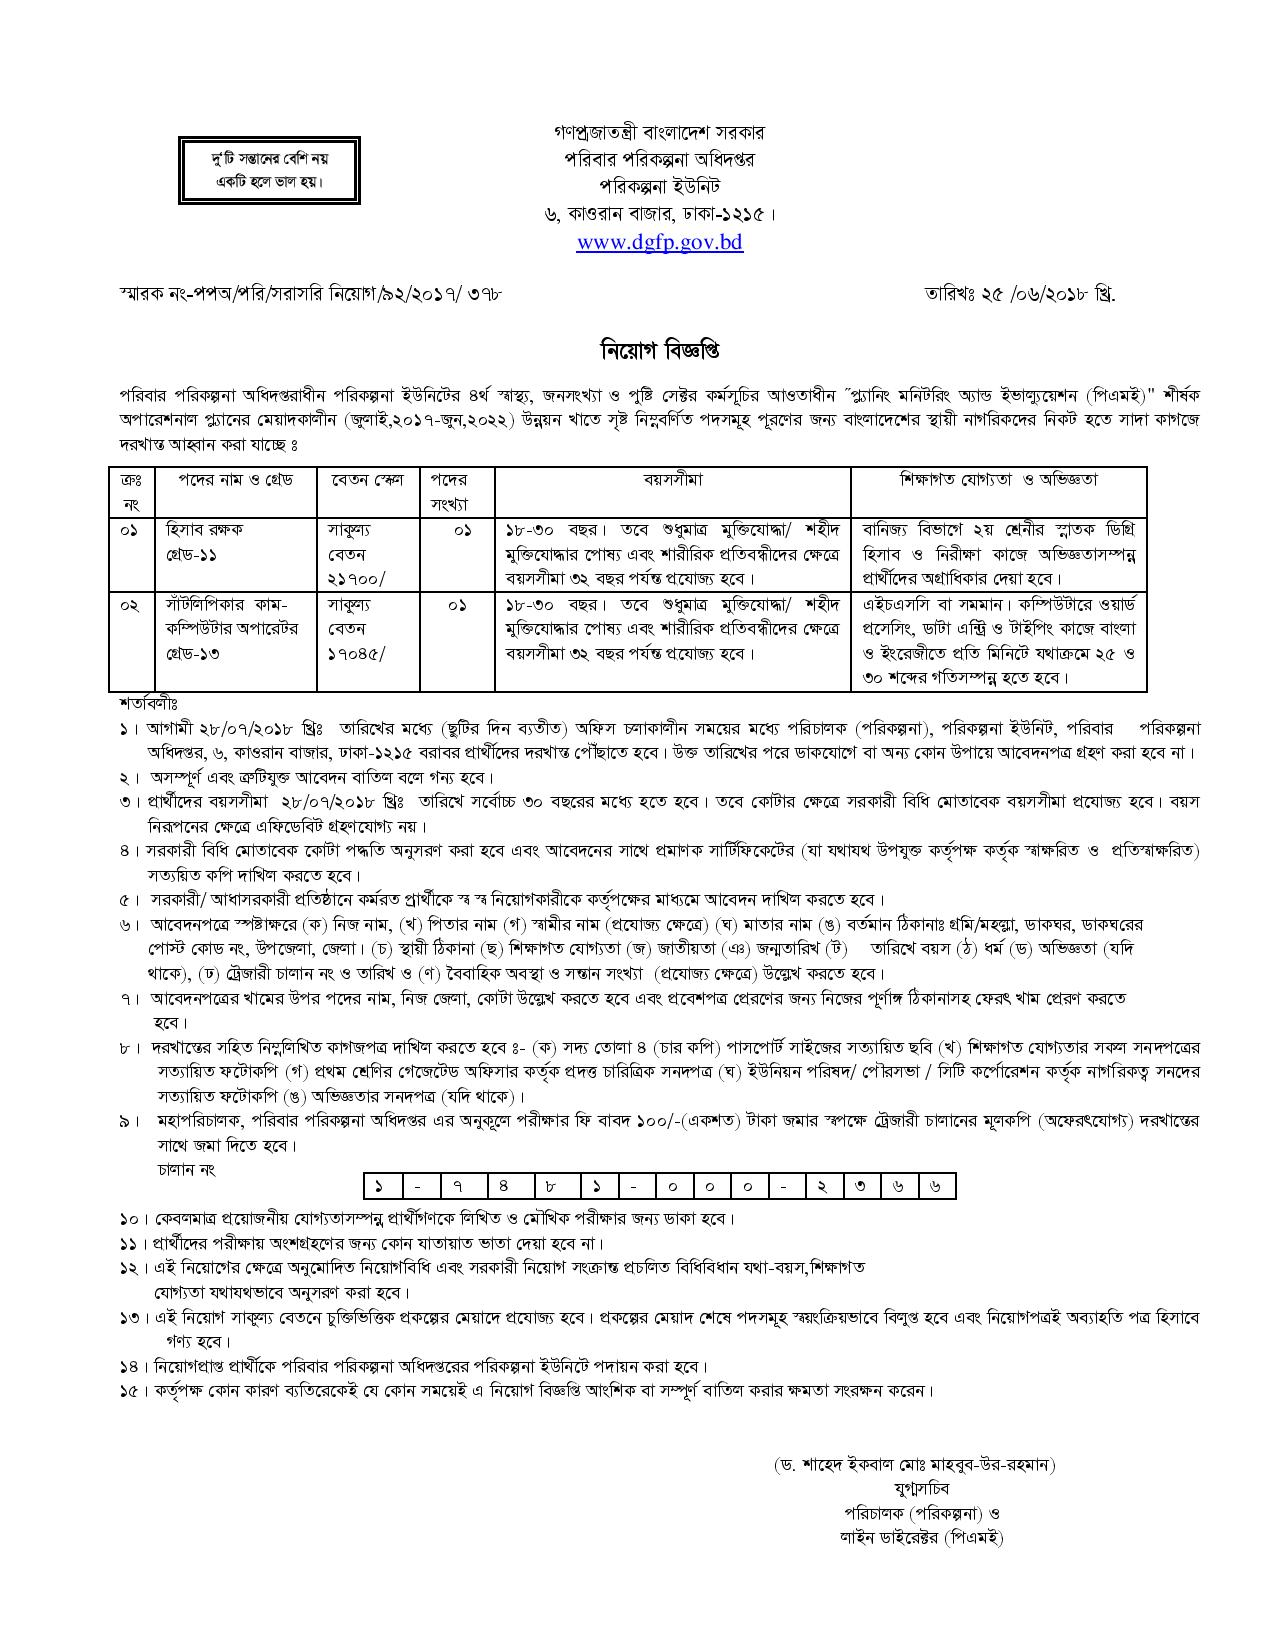 Department of Family Planning Job Circular 2018 by dailyjobsbd